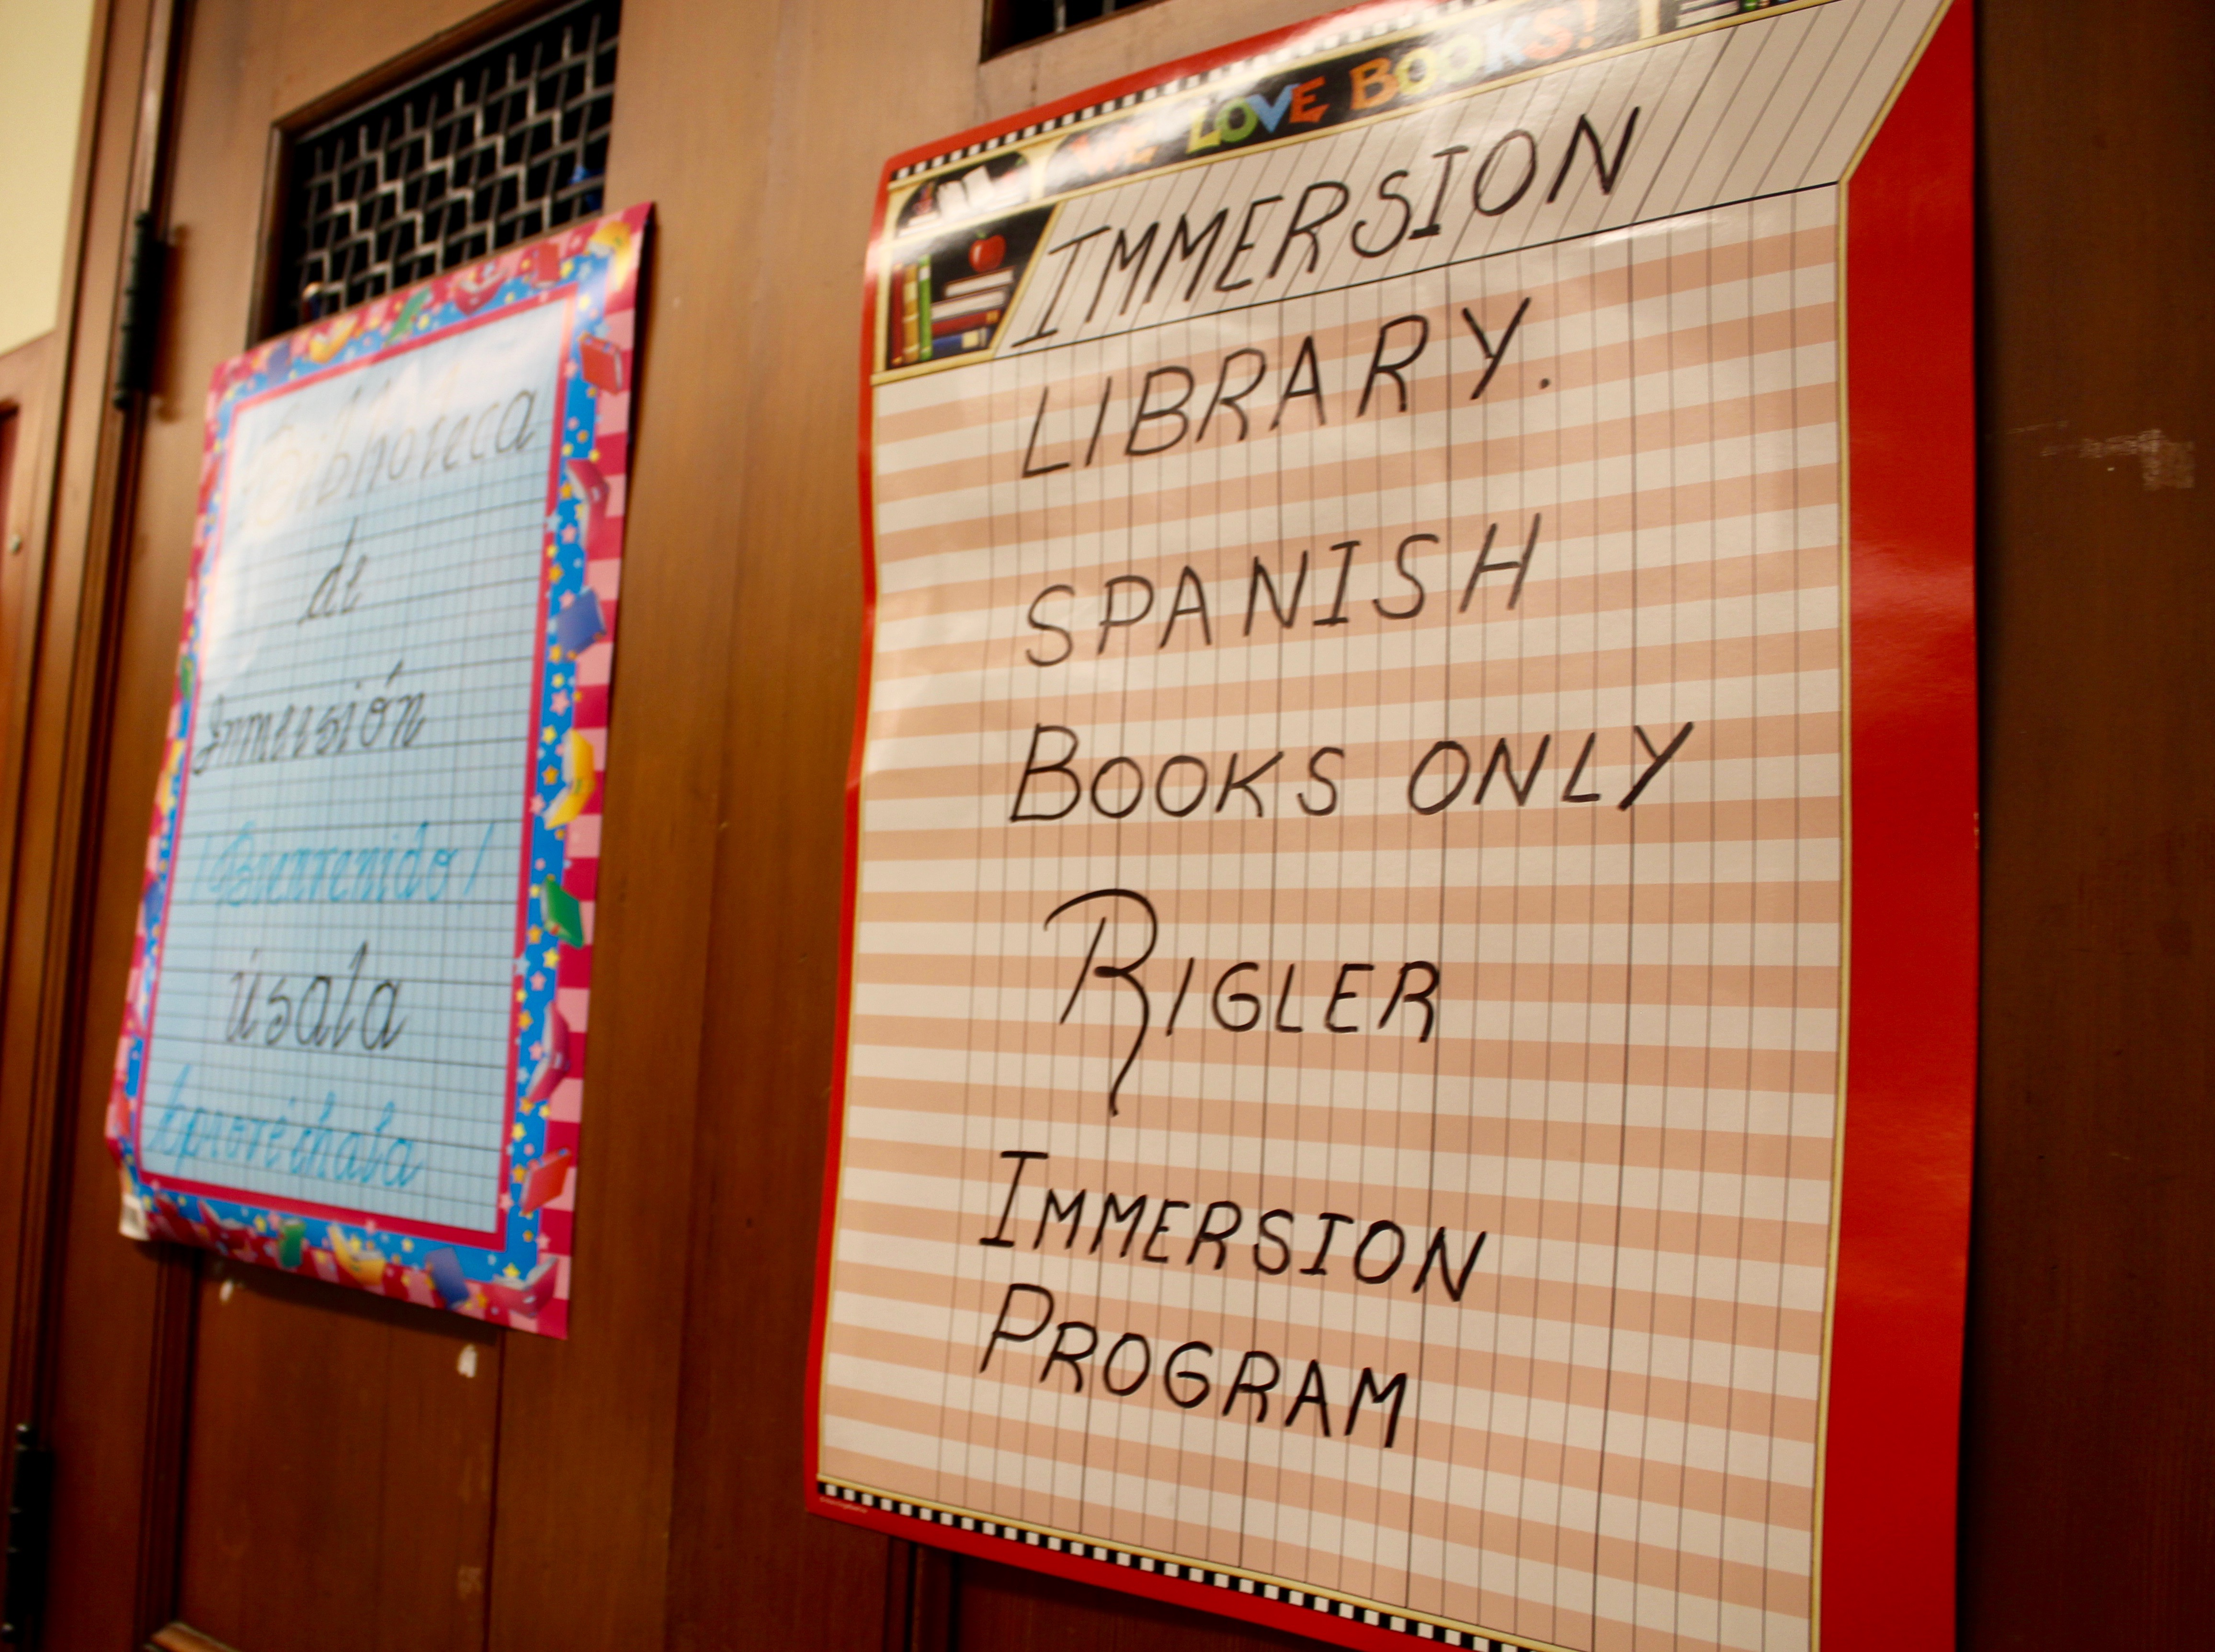 English learners: Other places are showing what works